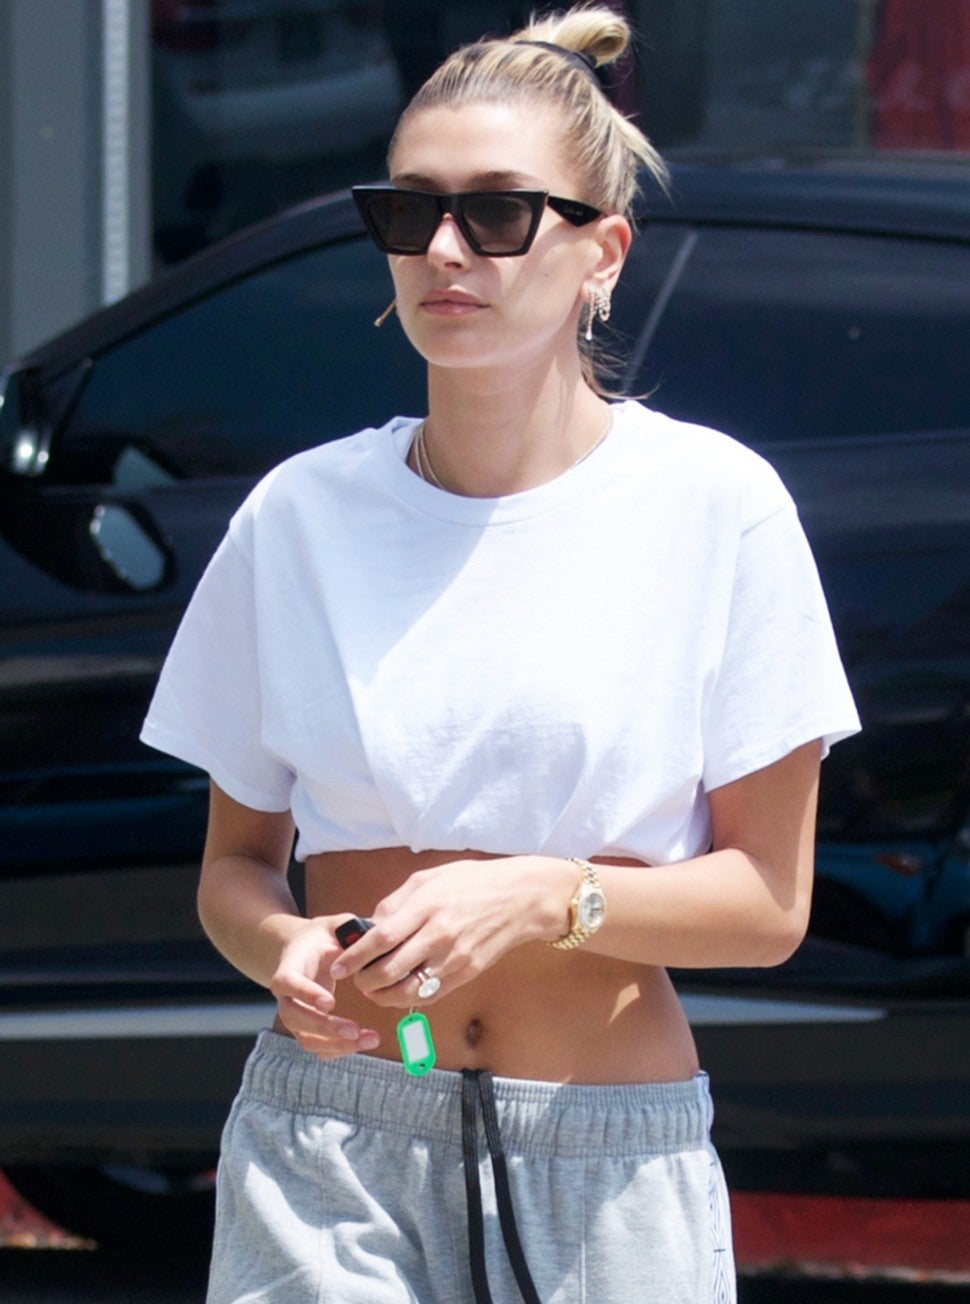 Hailey Bieber leaves her workout session in Beverly Hills